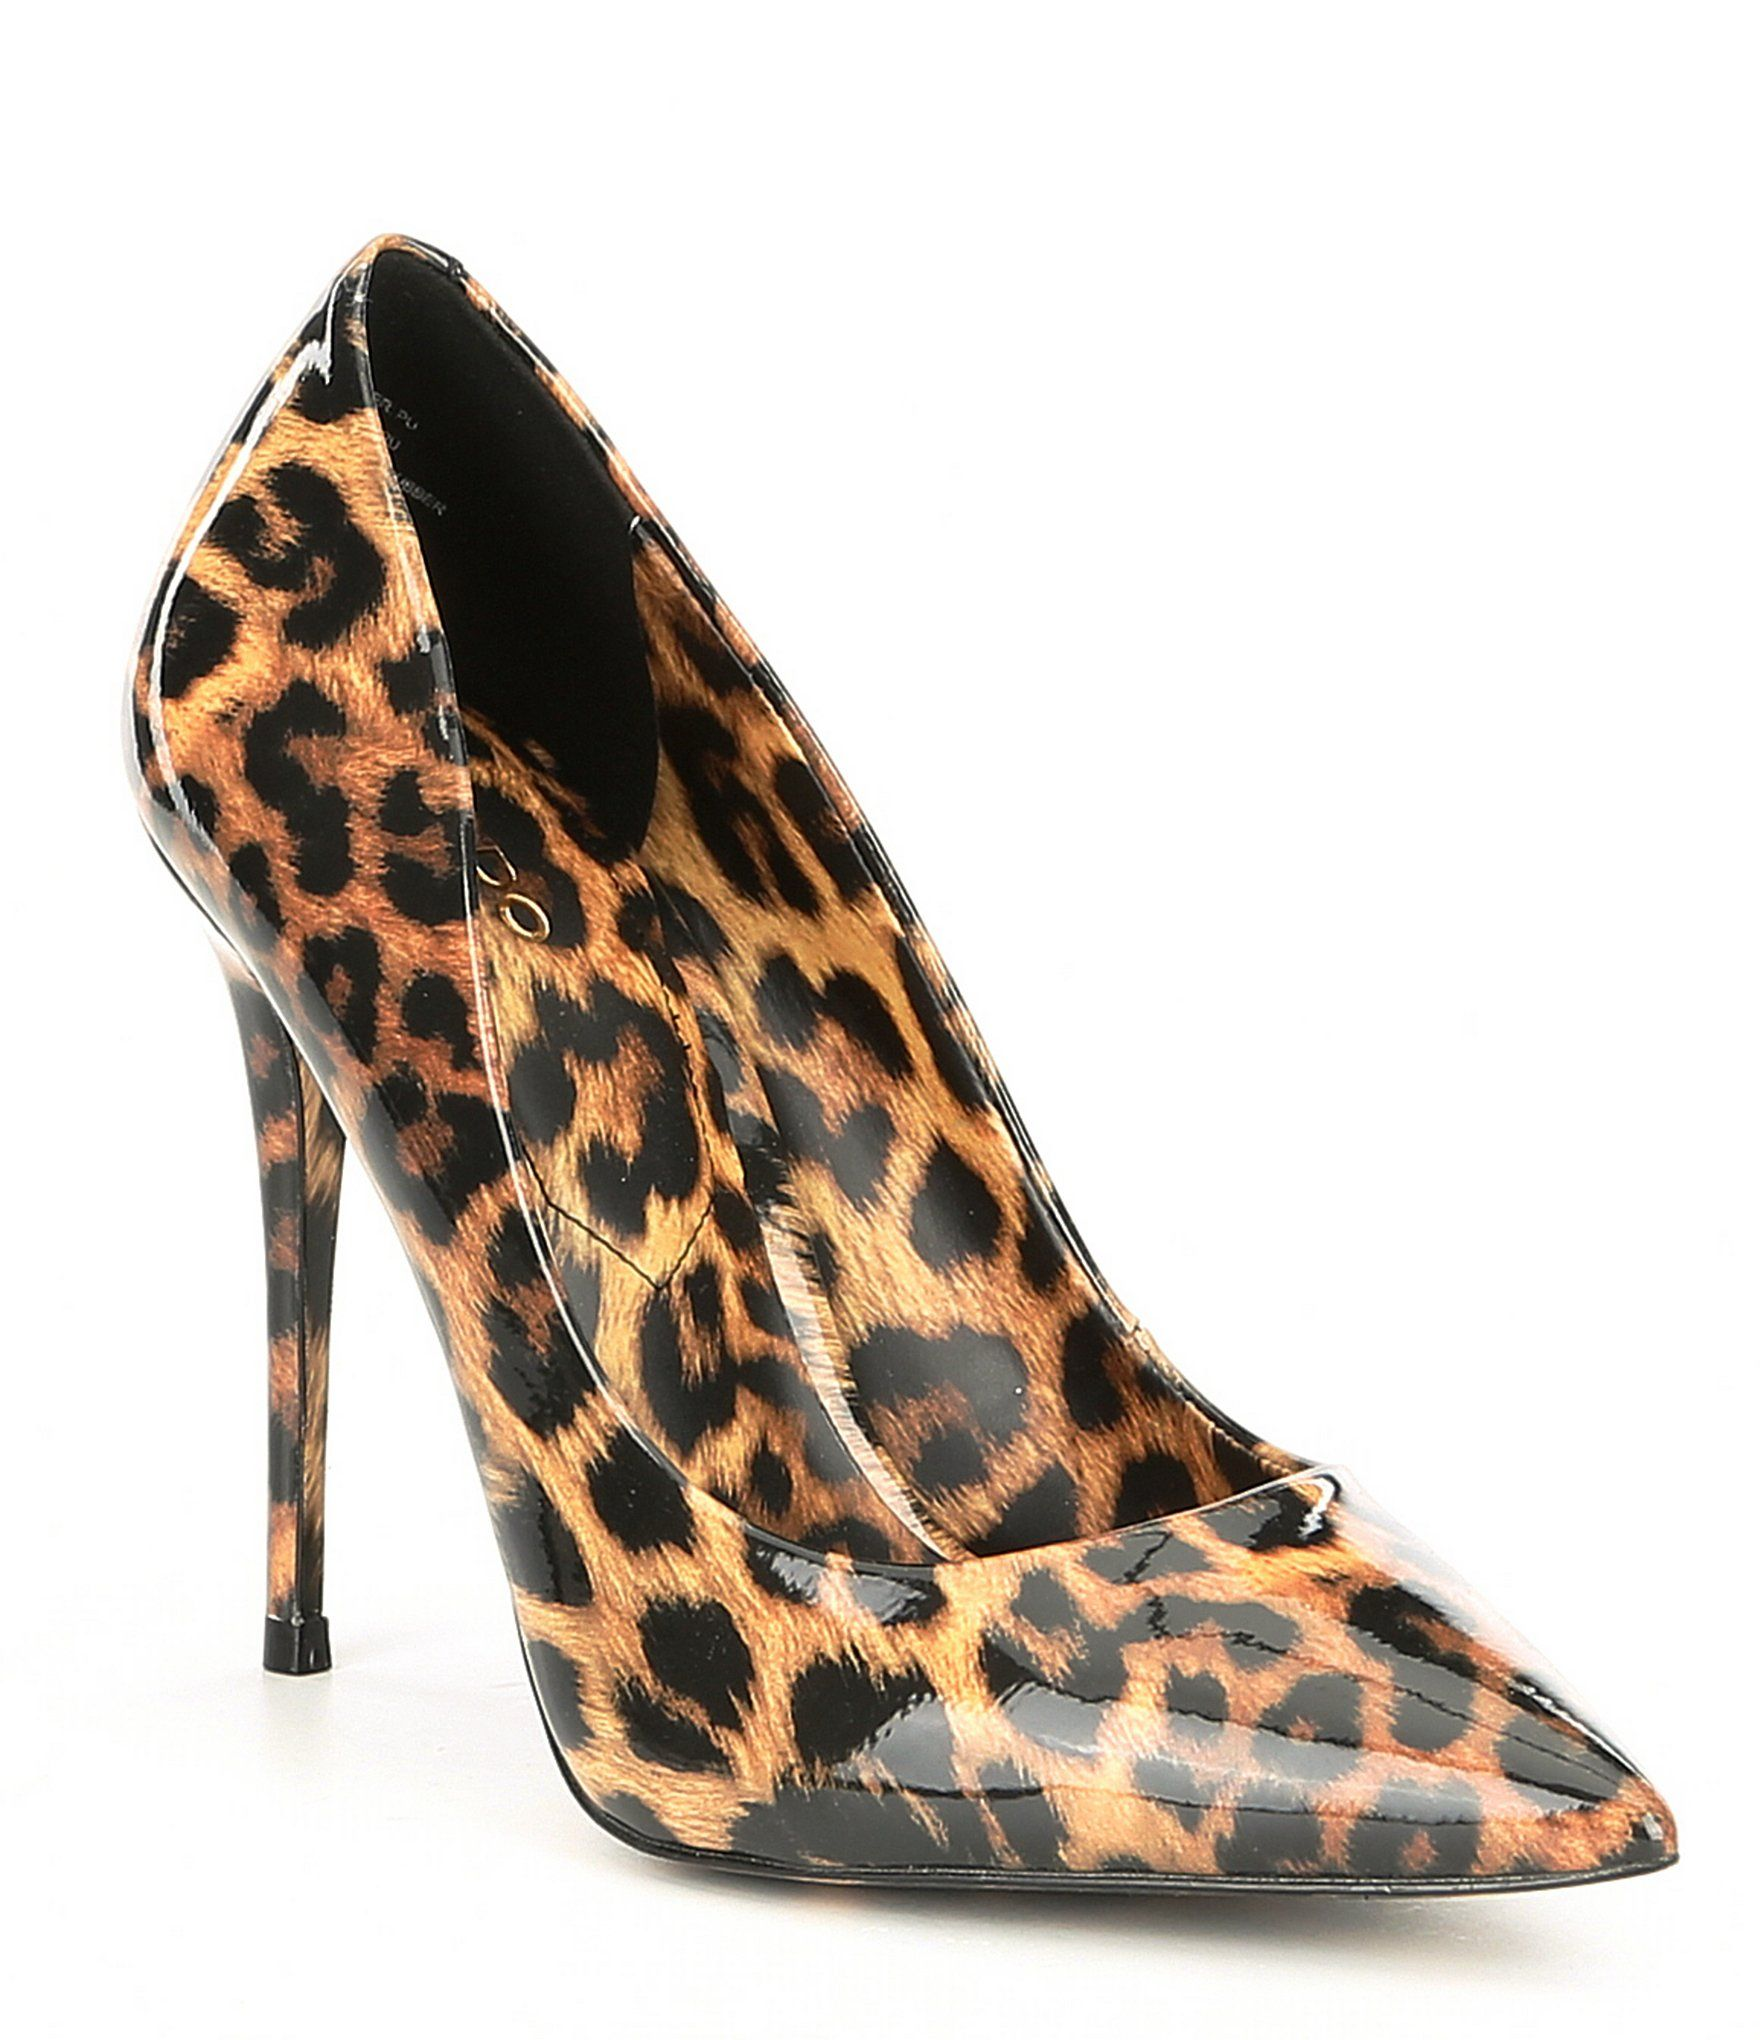 02f5bb307ae Shop for ALDO Stessy Leopard Print Pumps at Dillards.com. Visit ...